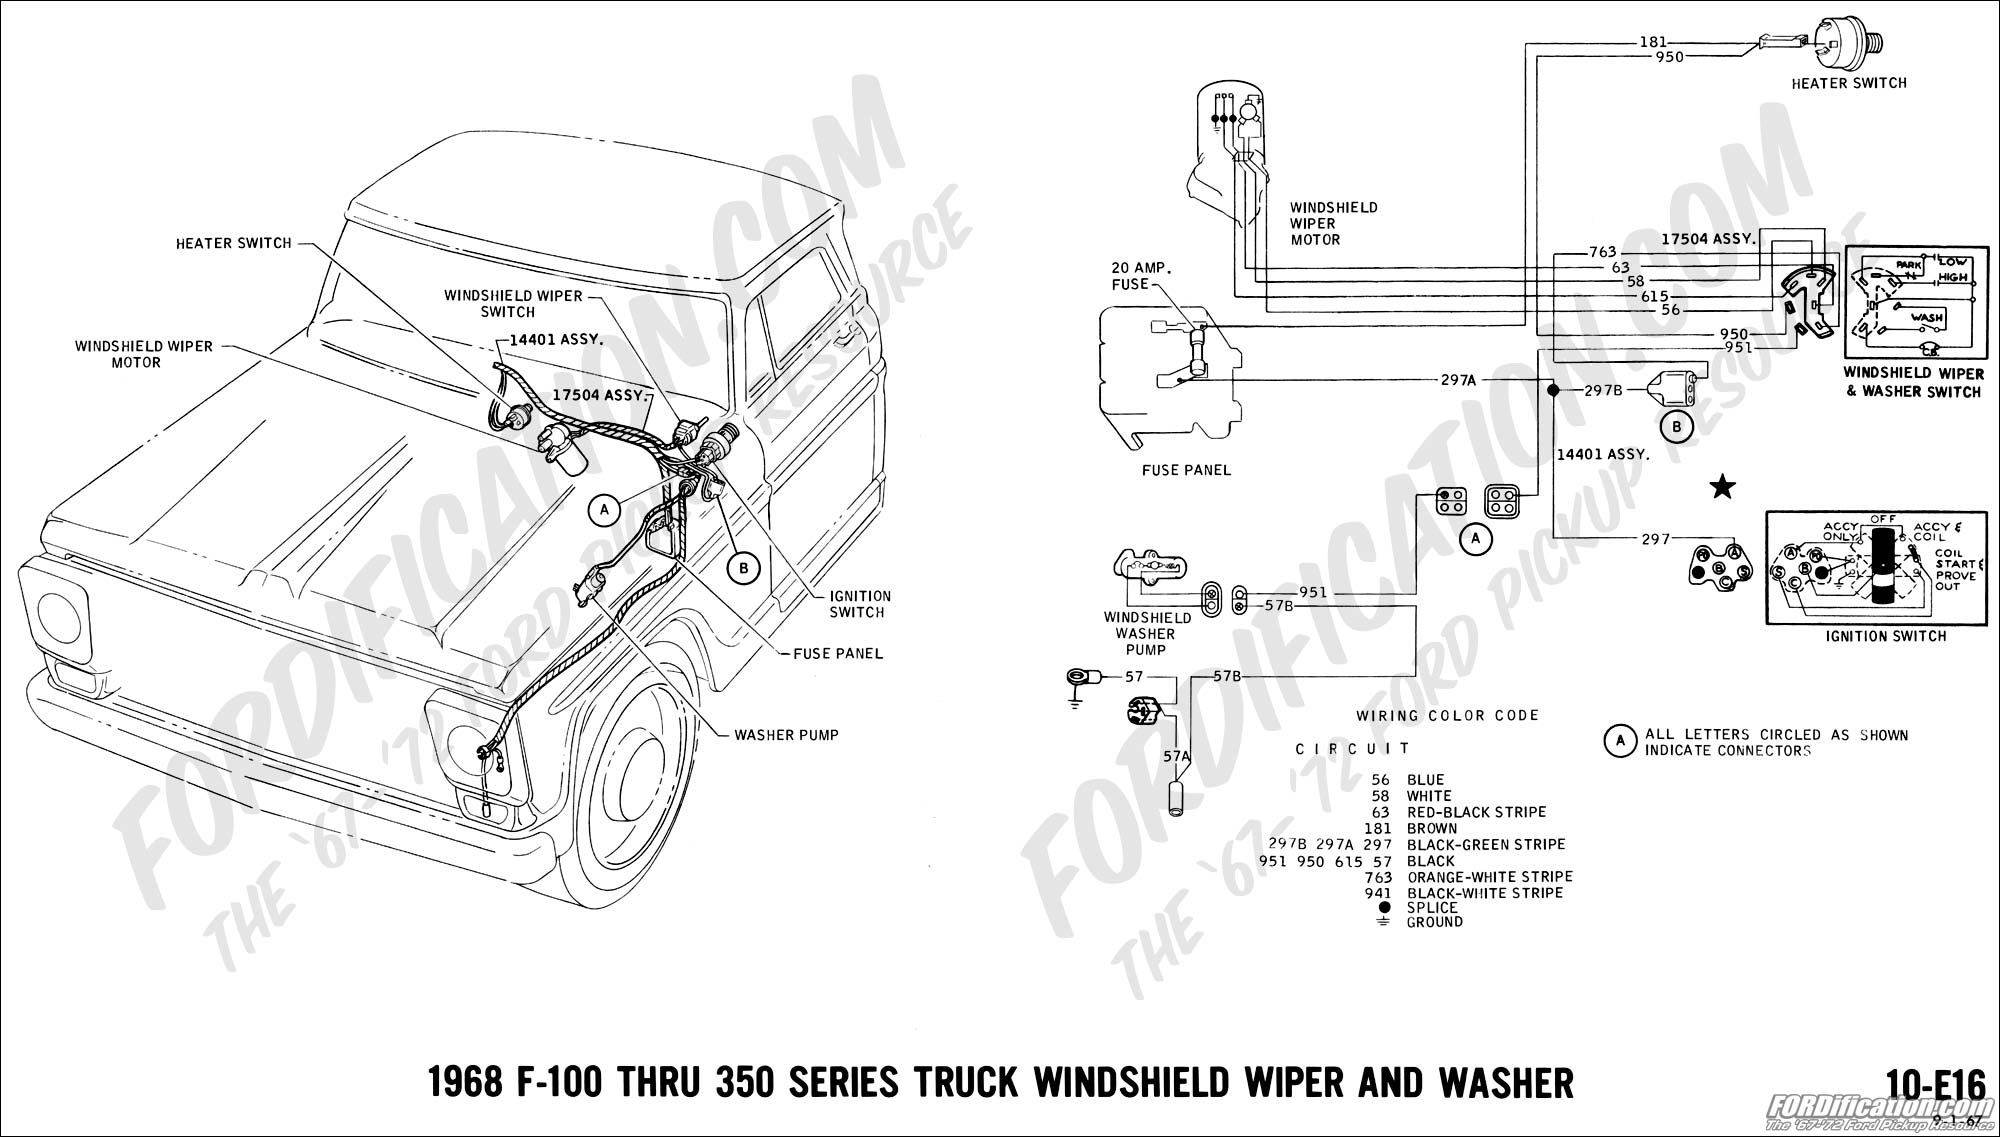 68 18 ford truck technical drawings and schematics section h wiring 1968 camaro wiper motor wiring diagram at webbmarketing.co